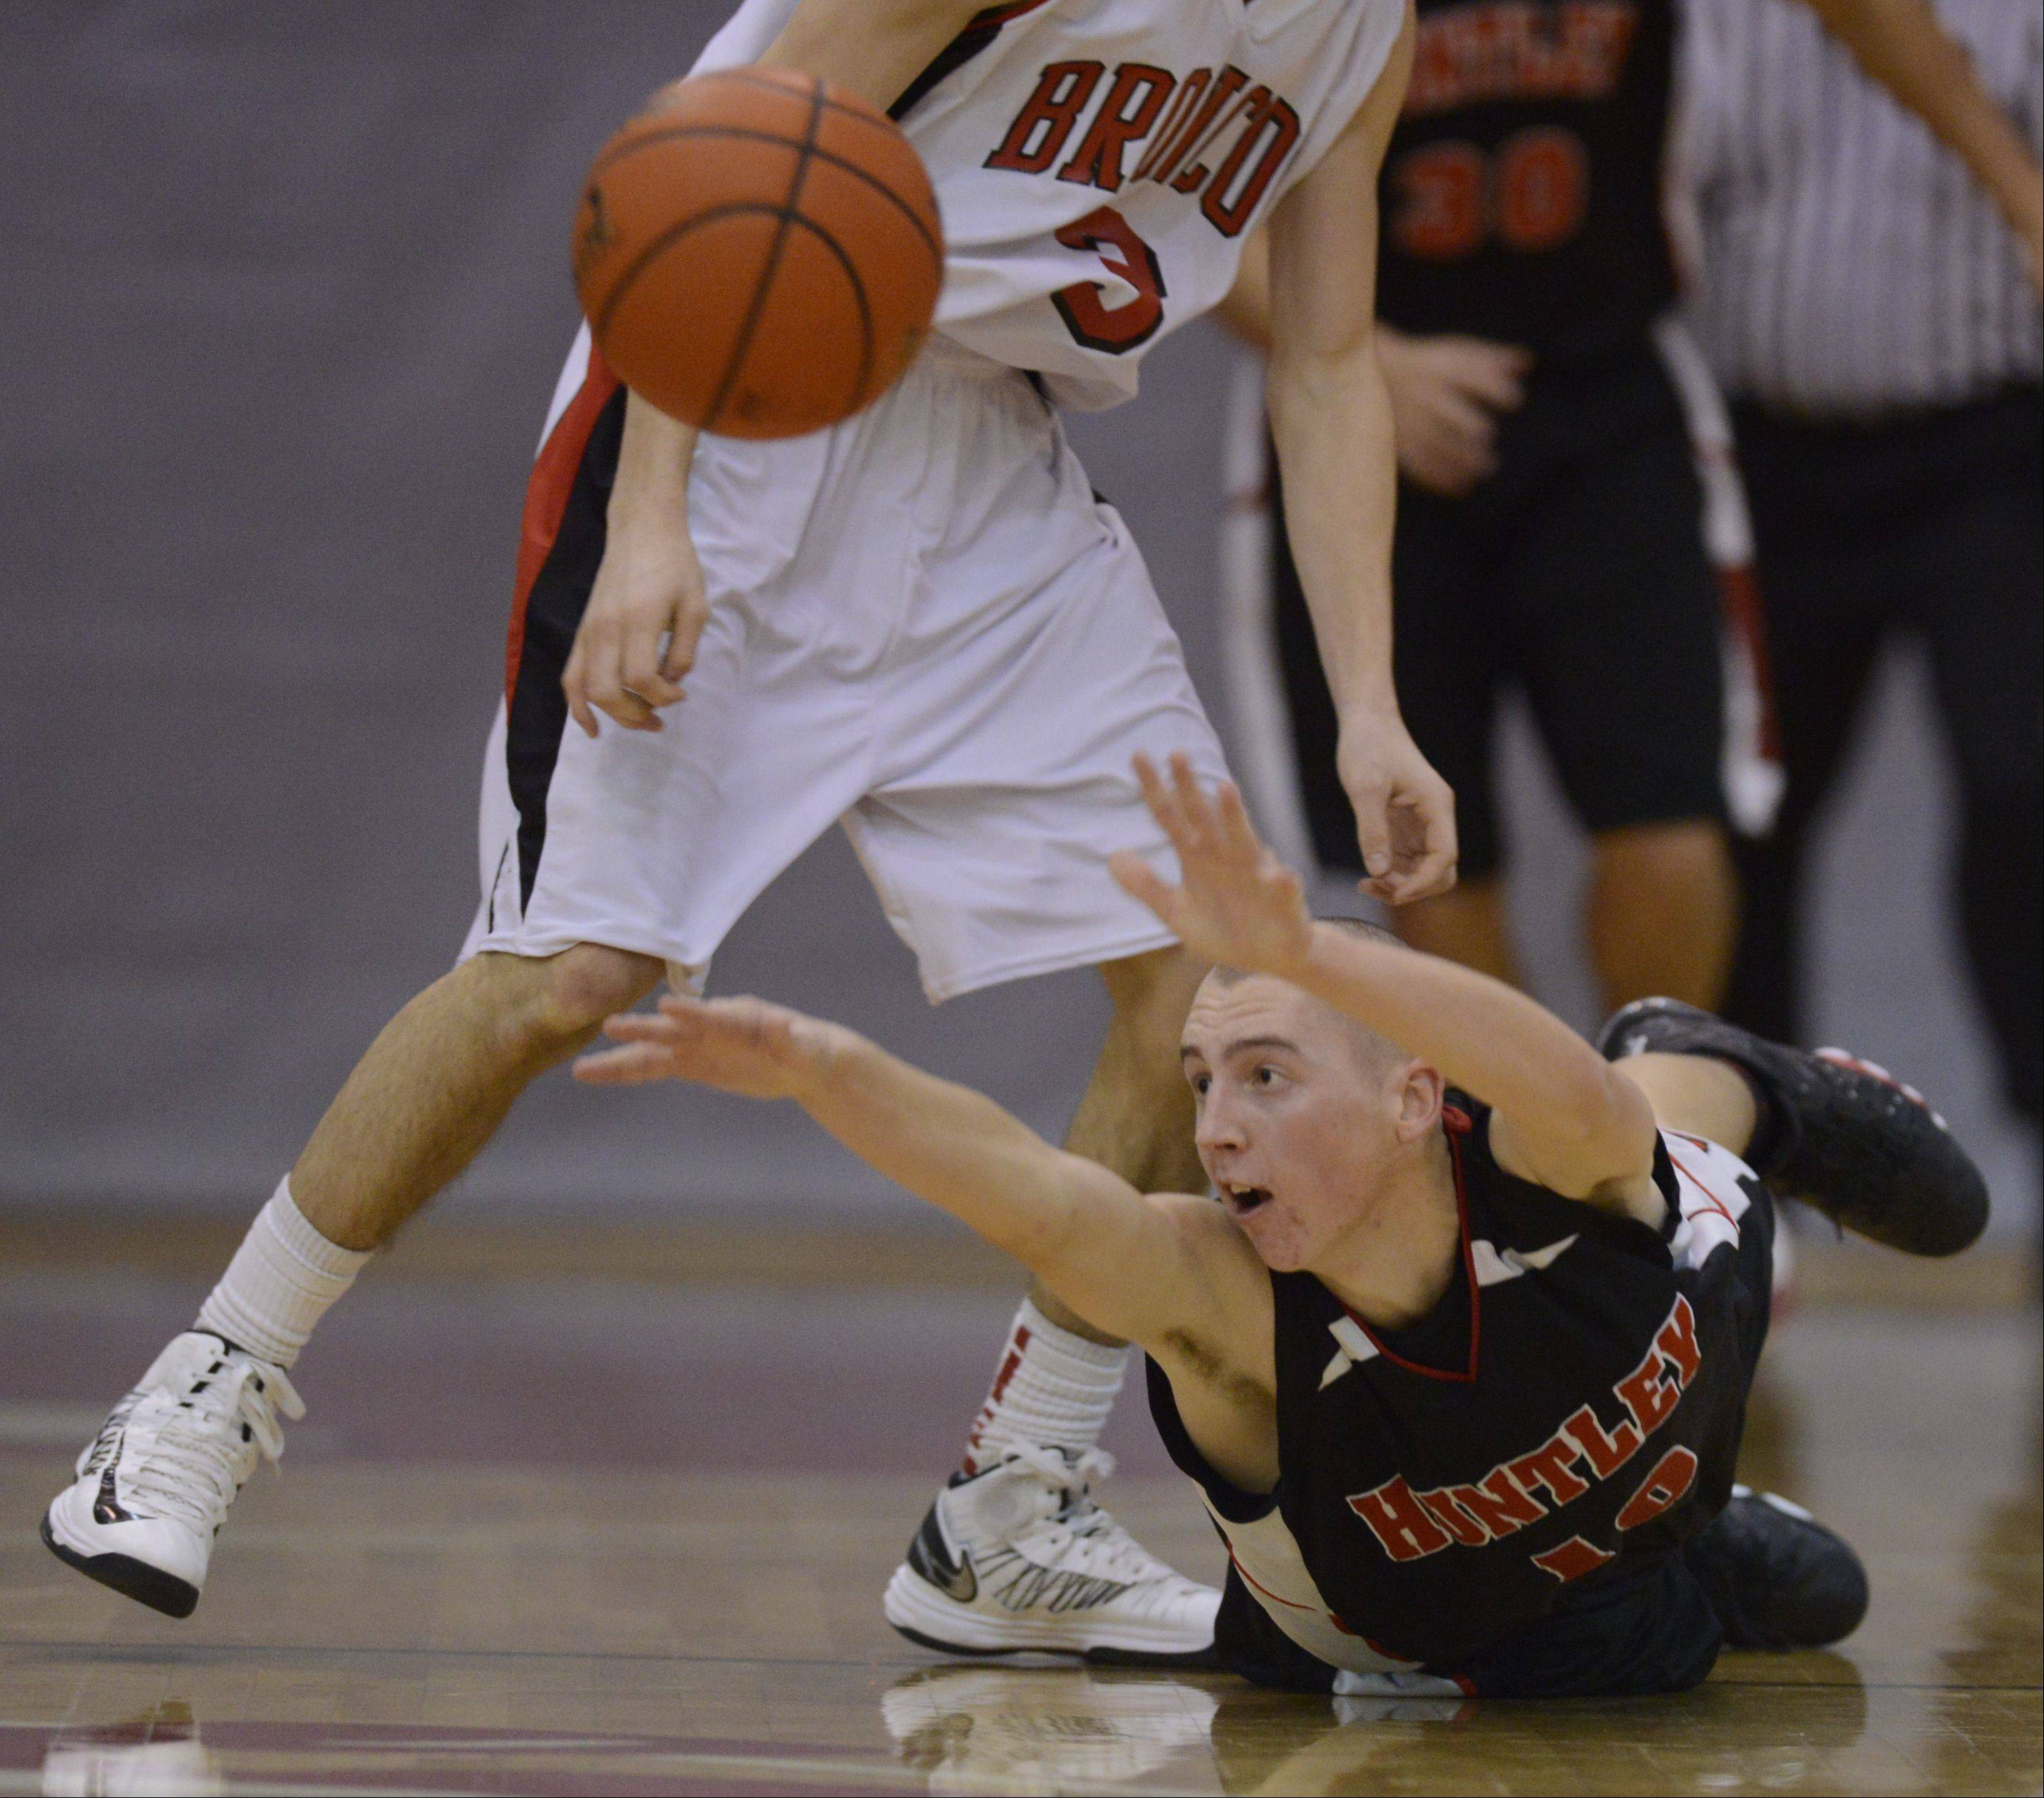 Images from the Barrington vs. Huntley boys basketball game on Tuesday, January 15th, in Barrington